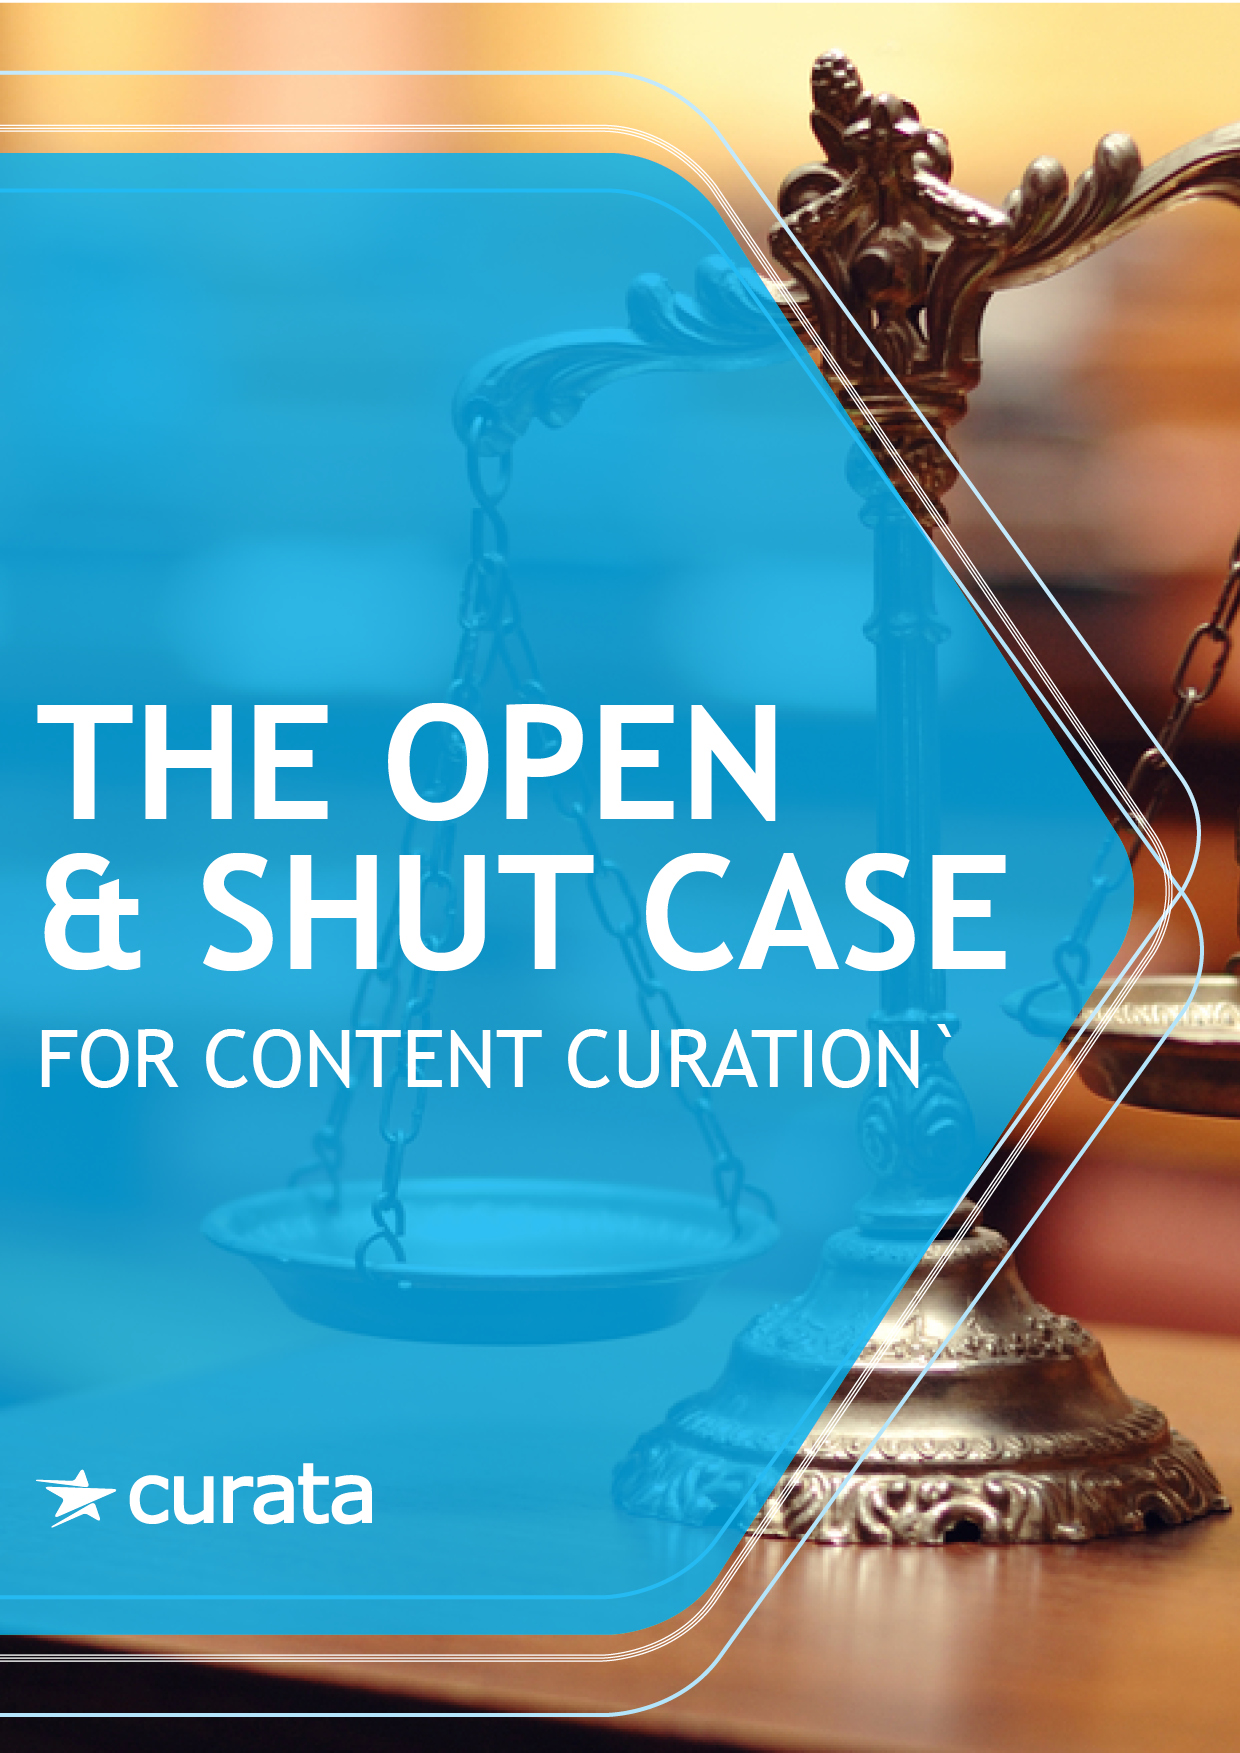 The Open and Shut Case for Content Curation